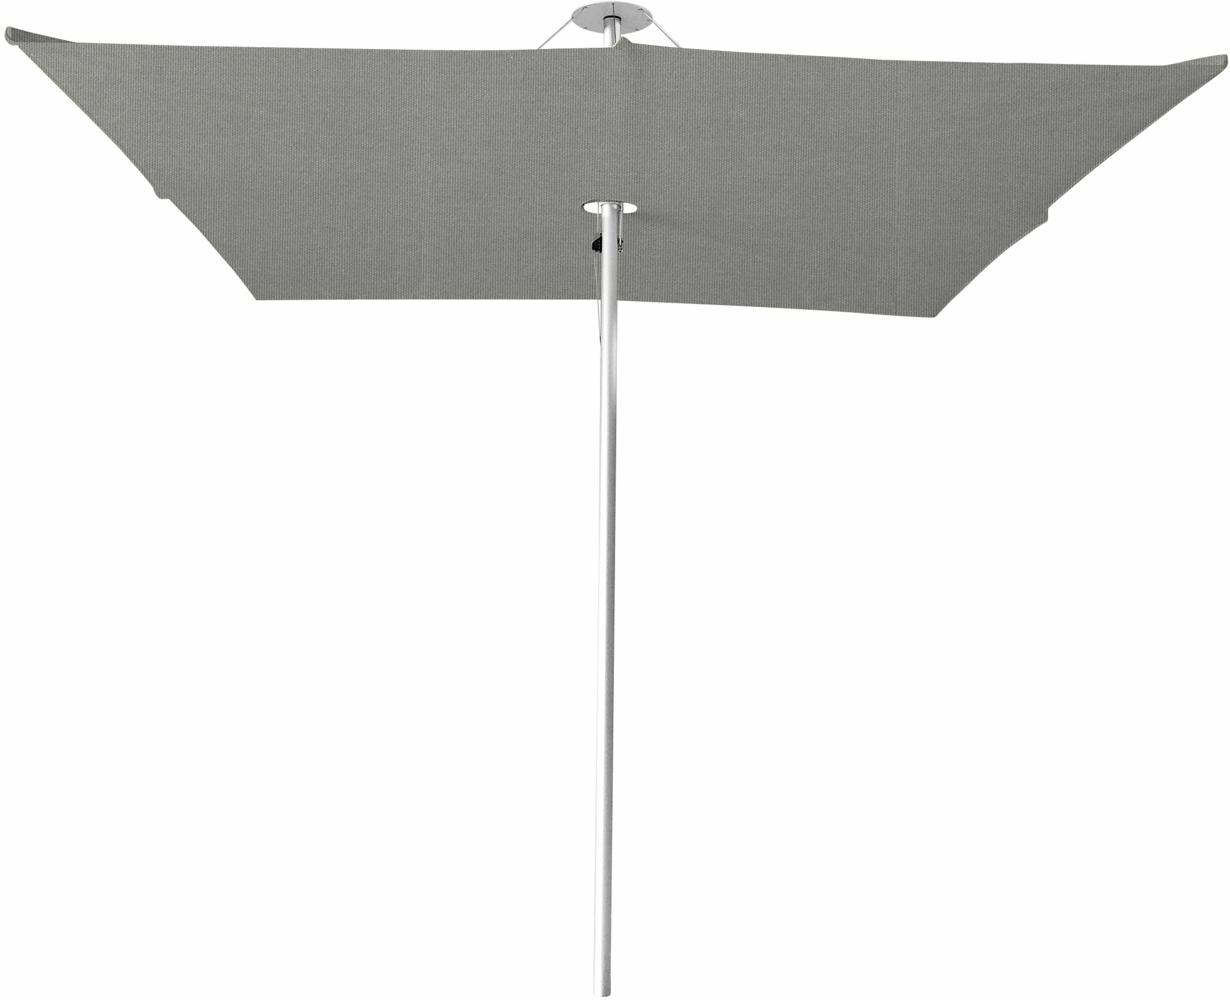 Infina canopy square 3 m in colour Grey